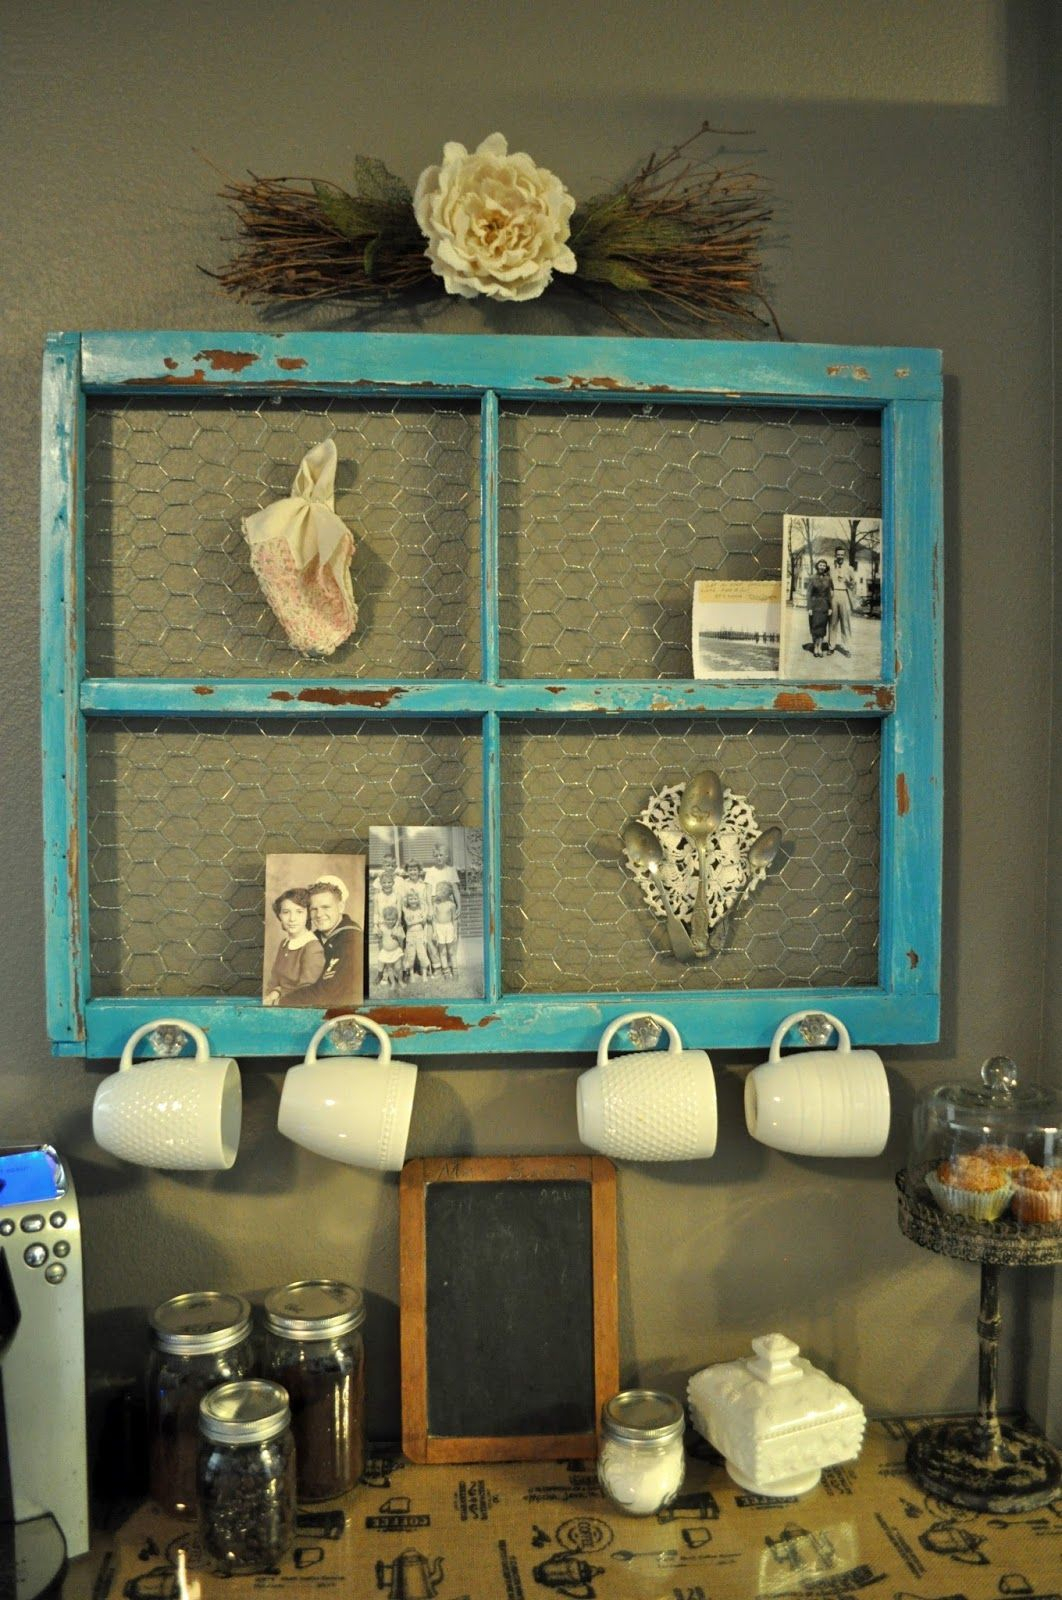 20 Different Ways To Use Old Window Frames | The Best With Old Rustic Barn Window Frame (Gallery 19 of 30)